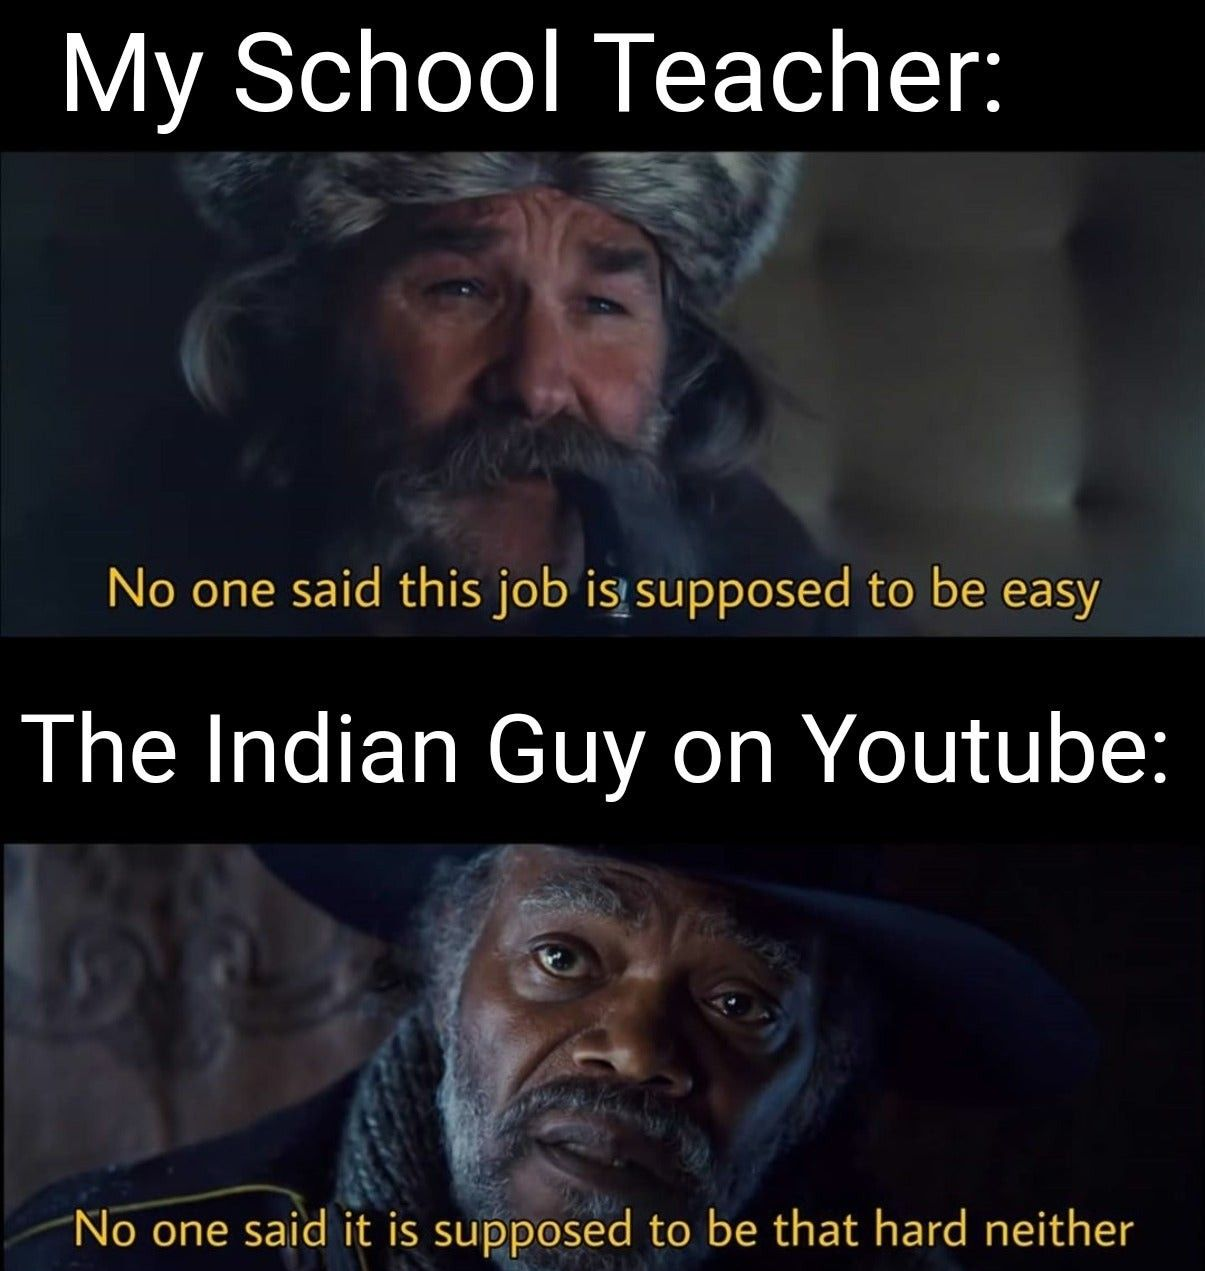 Thank you Indian guy